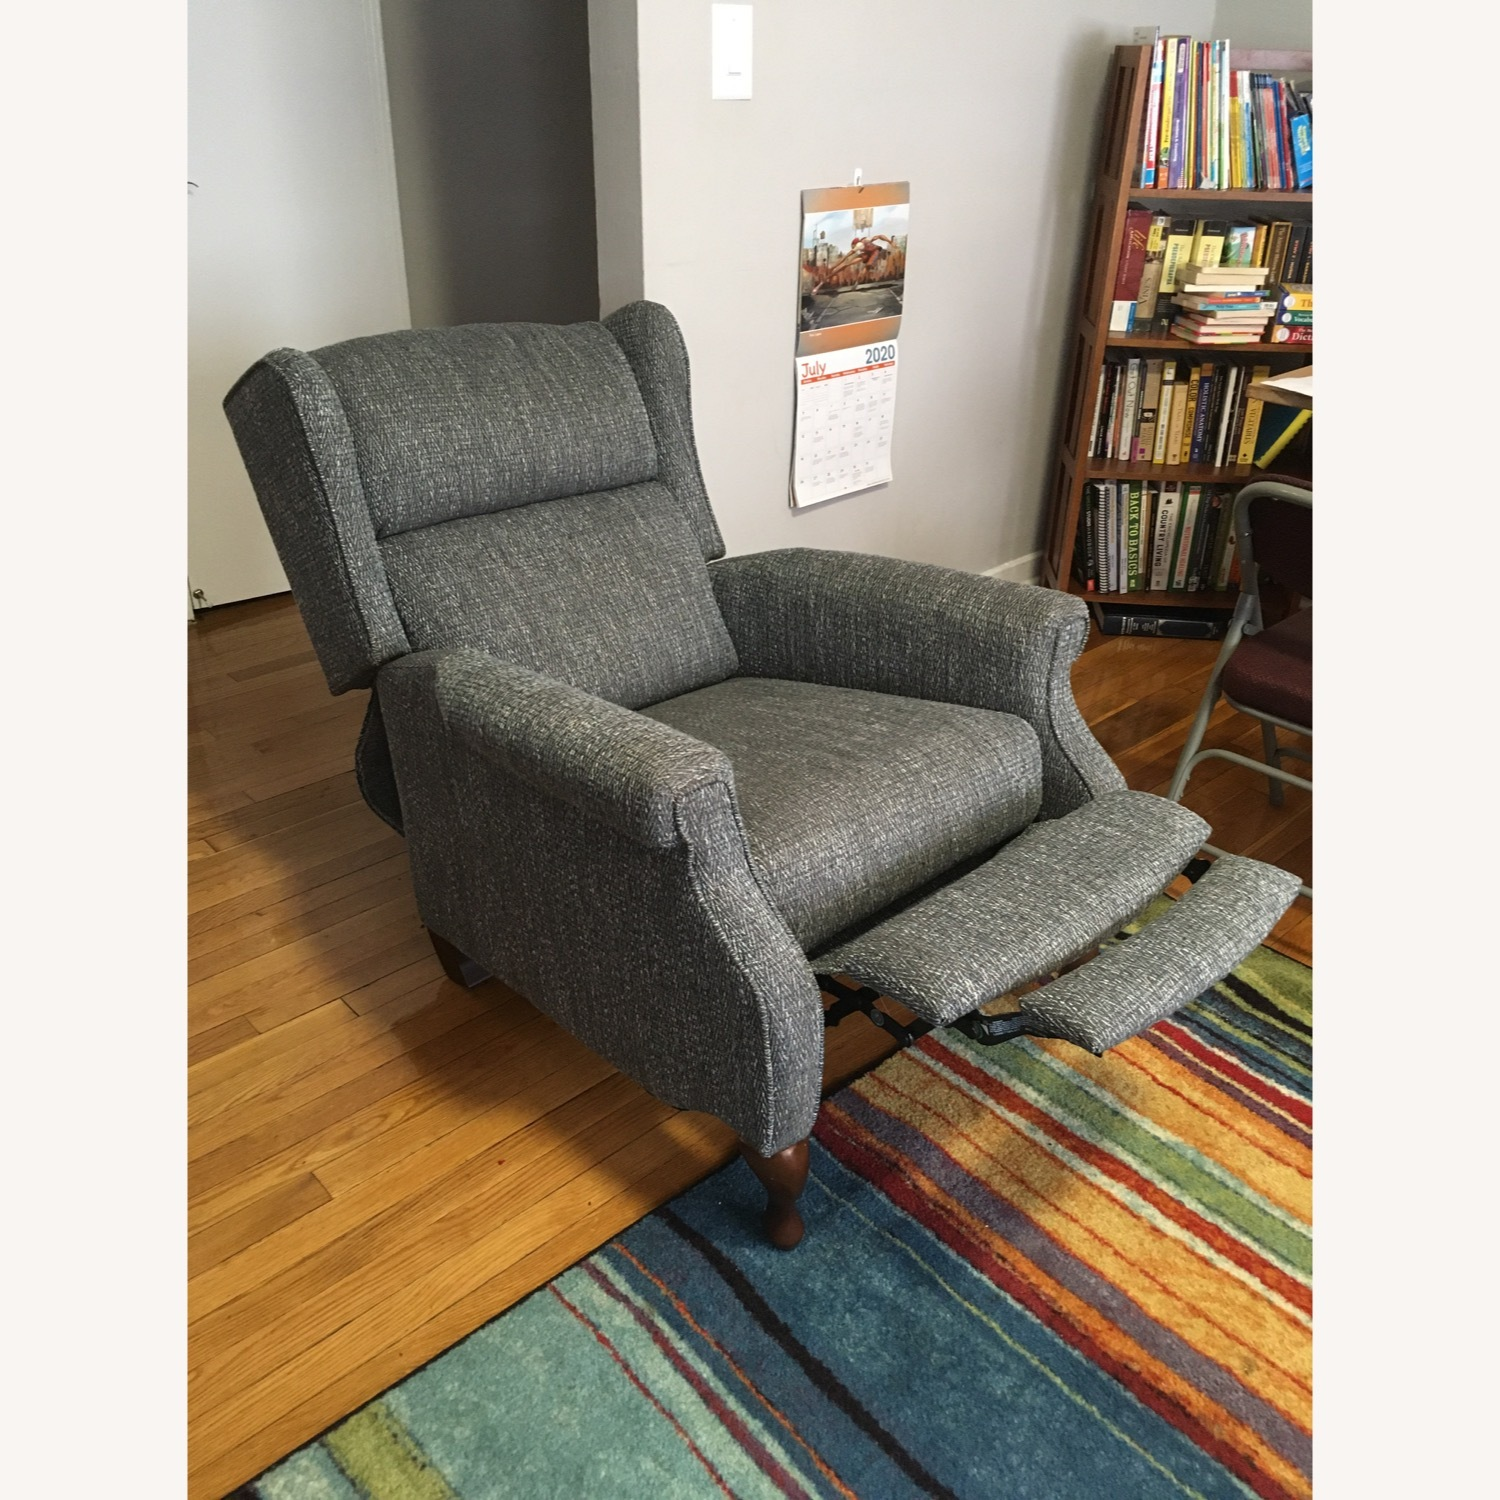 Macy's Blue Gray Pushback Recliner - image-1